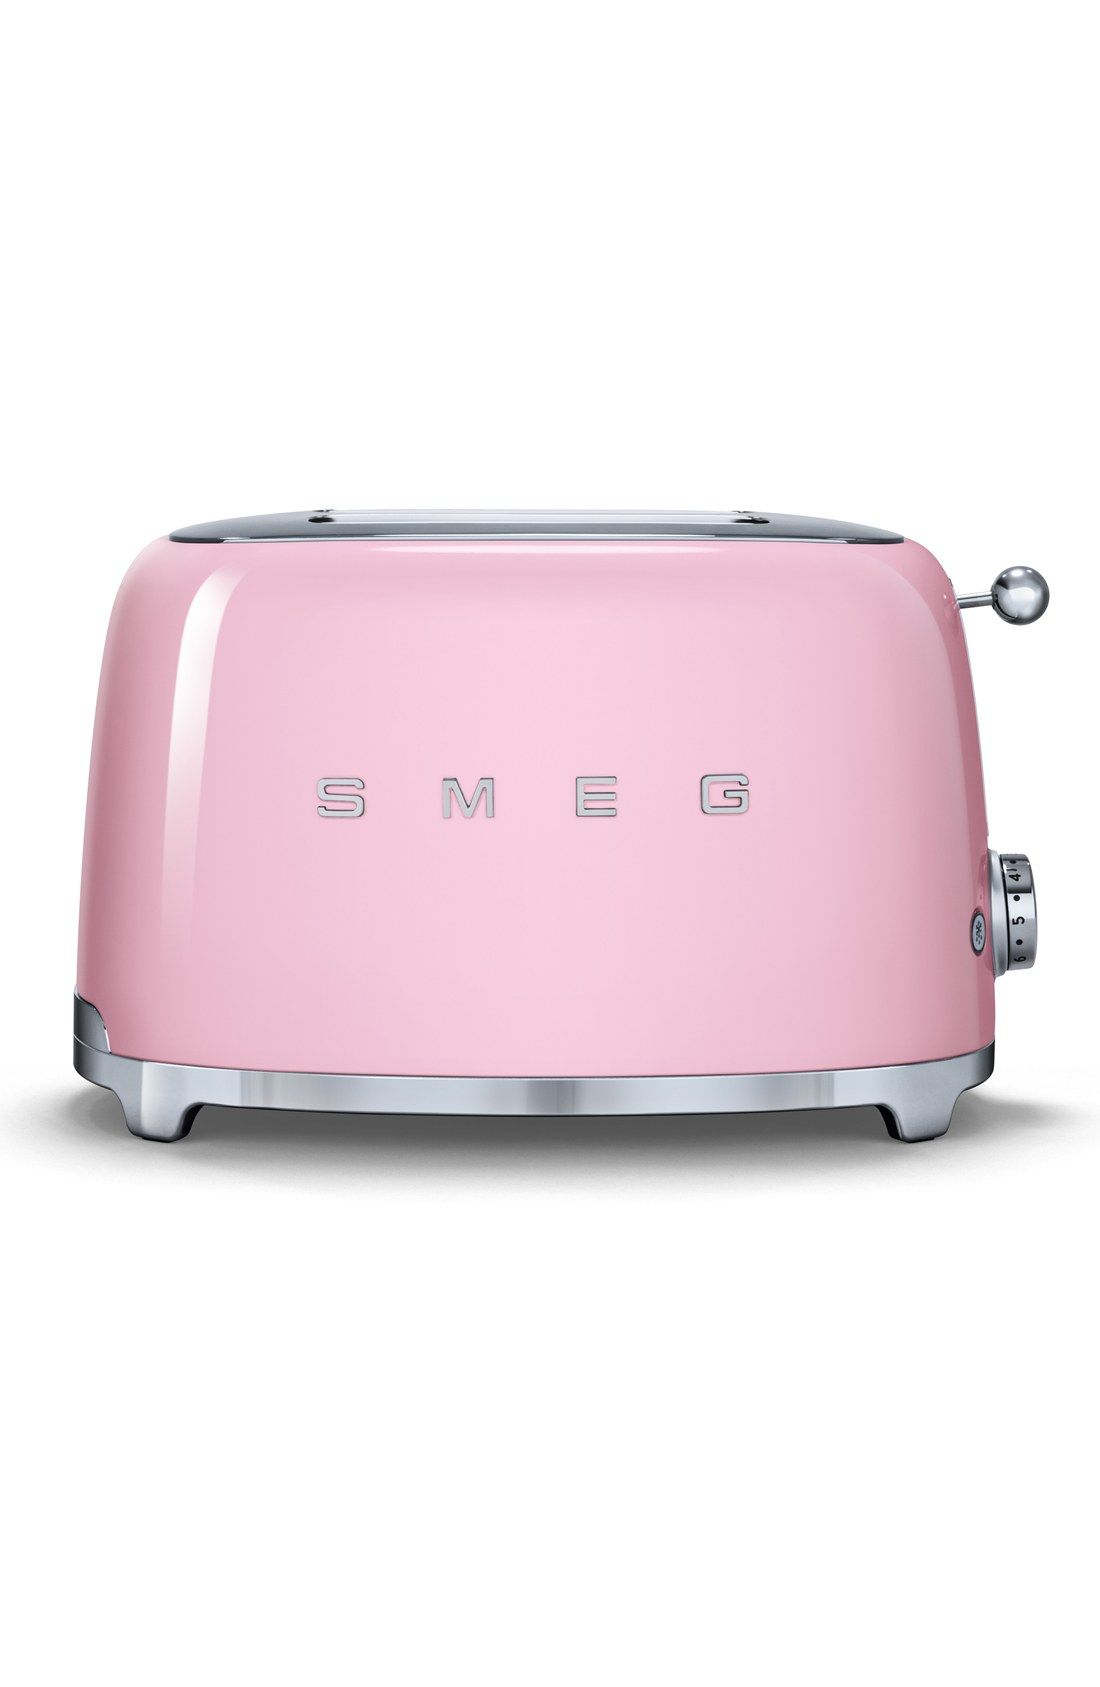 Pink Small Kitchen Appliances This Retro Toaster In Pink Is Totally Cute And Perfect For The